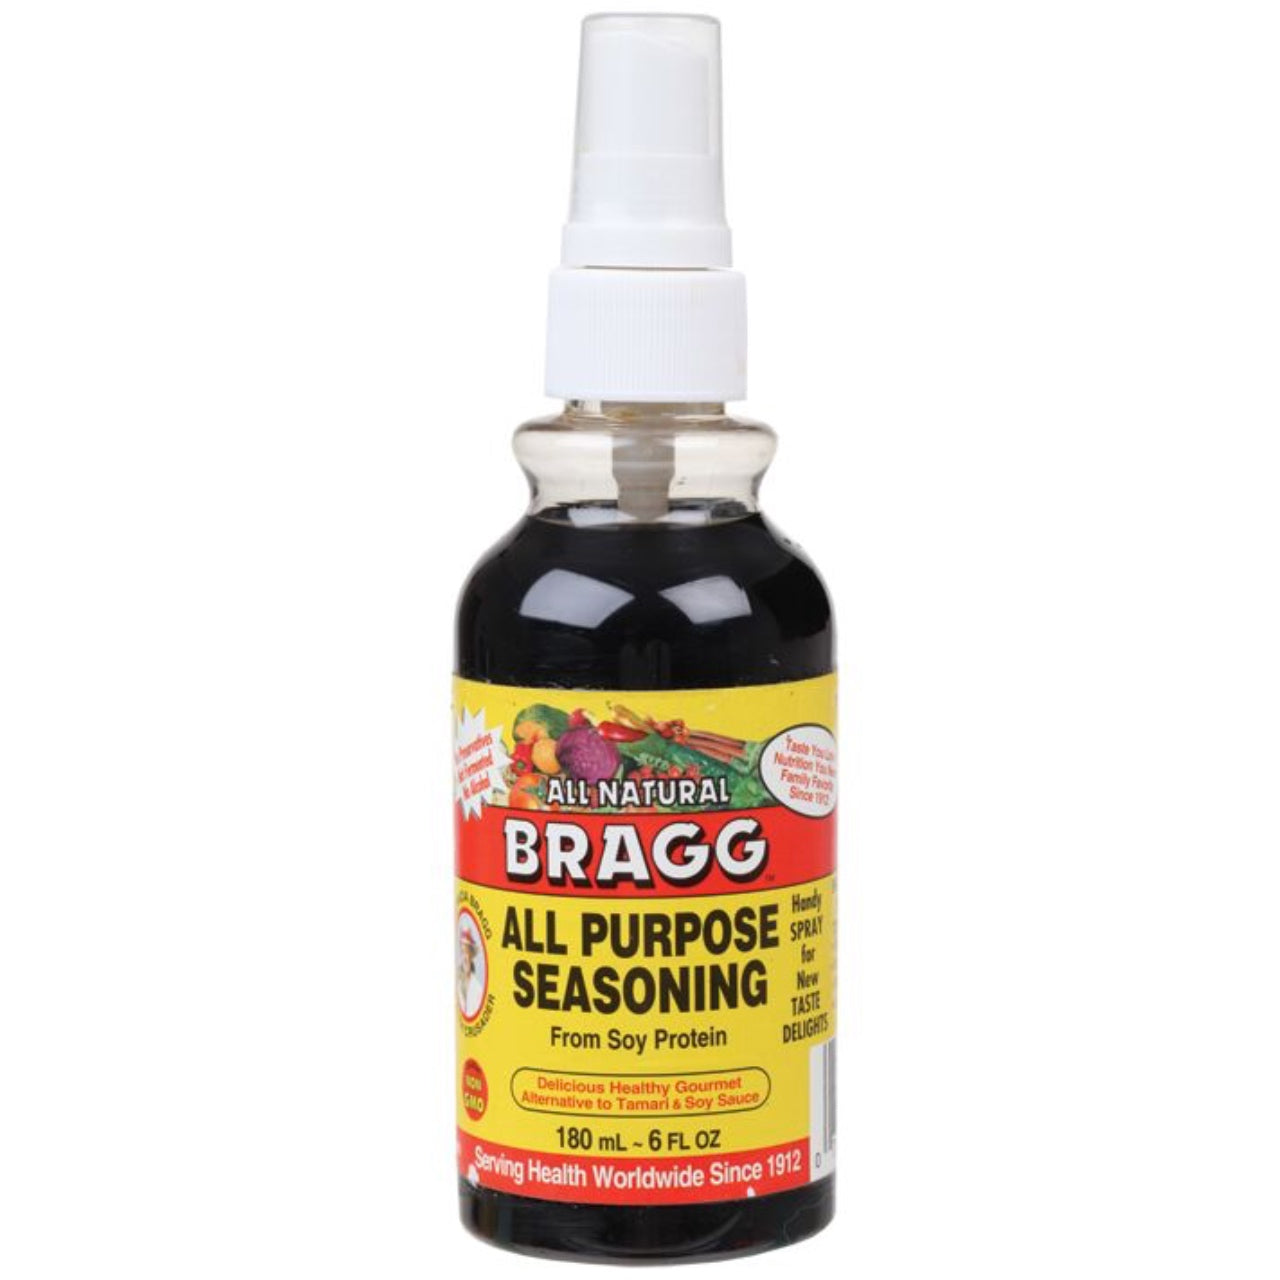 Bragg - All Purpose Seasoning